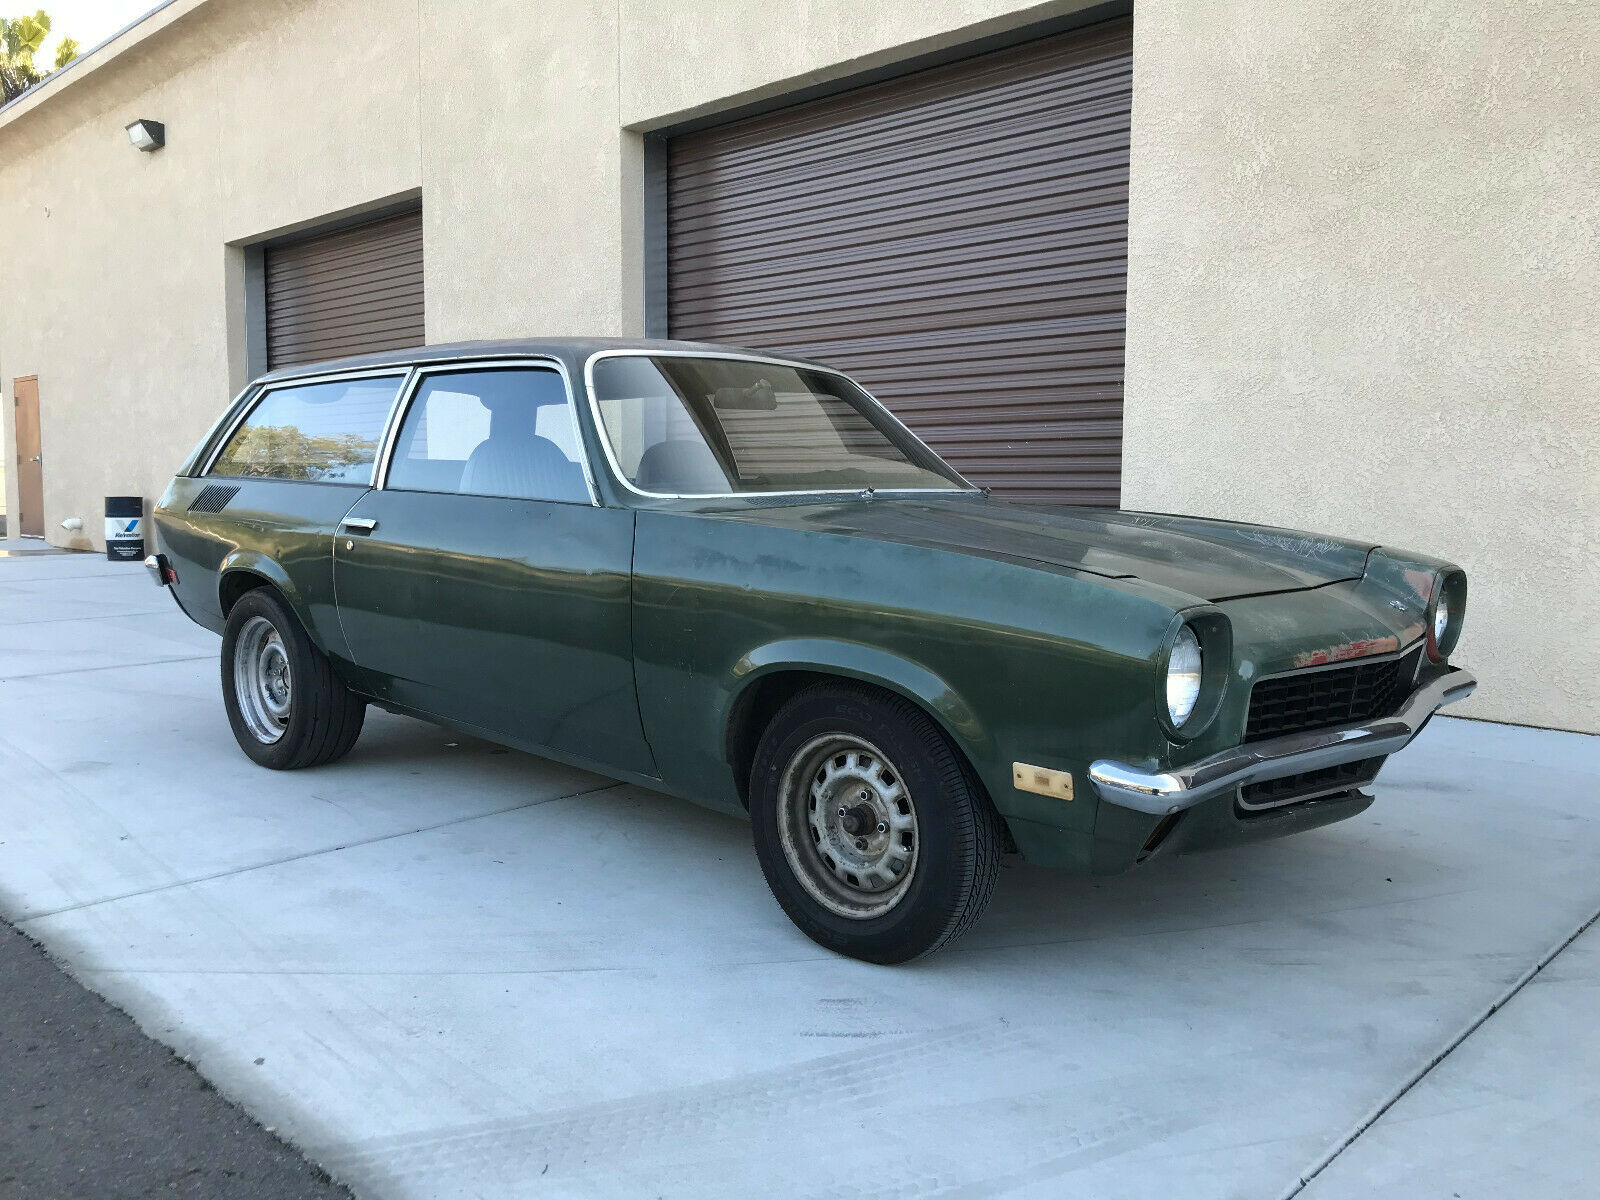 This 1971 Vega Kammback Wagon Is The Ultimate Sleeper With An LS Swap And Rad Patina